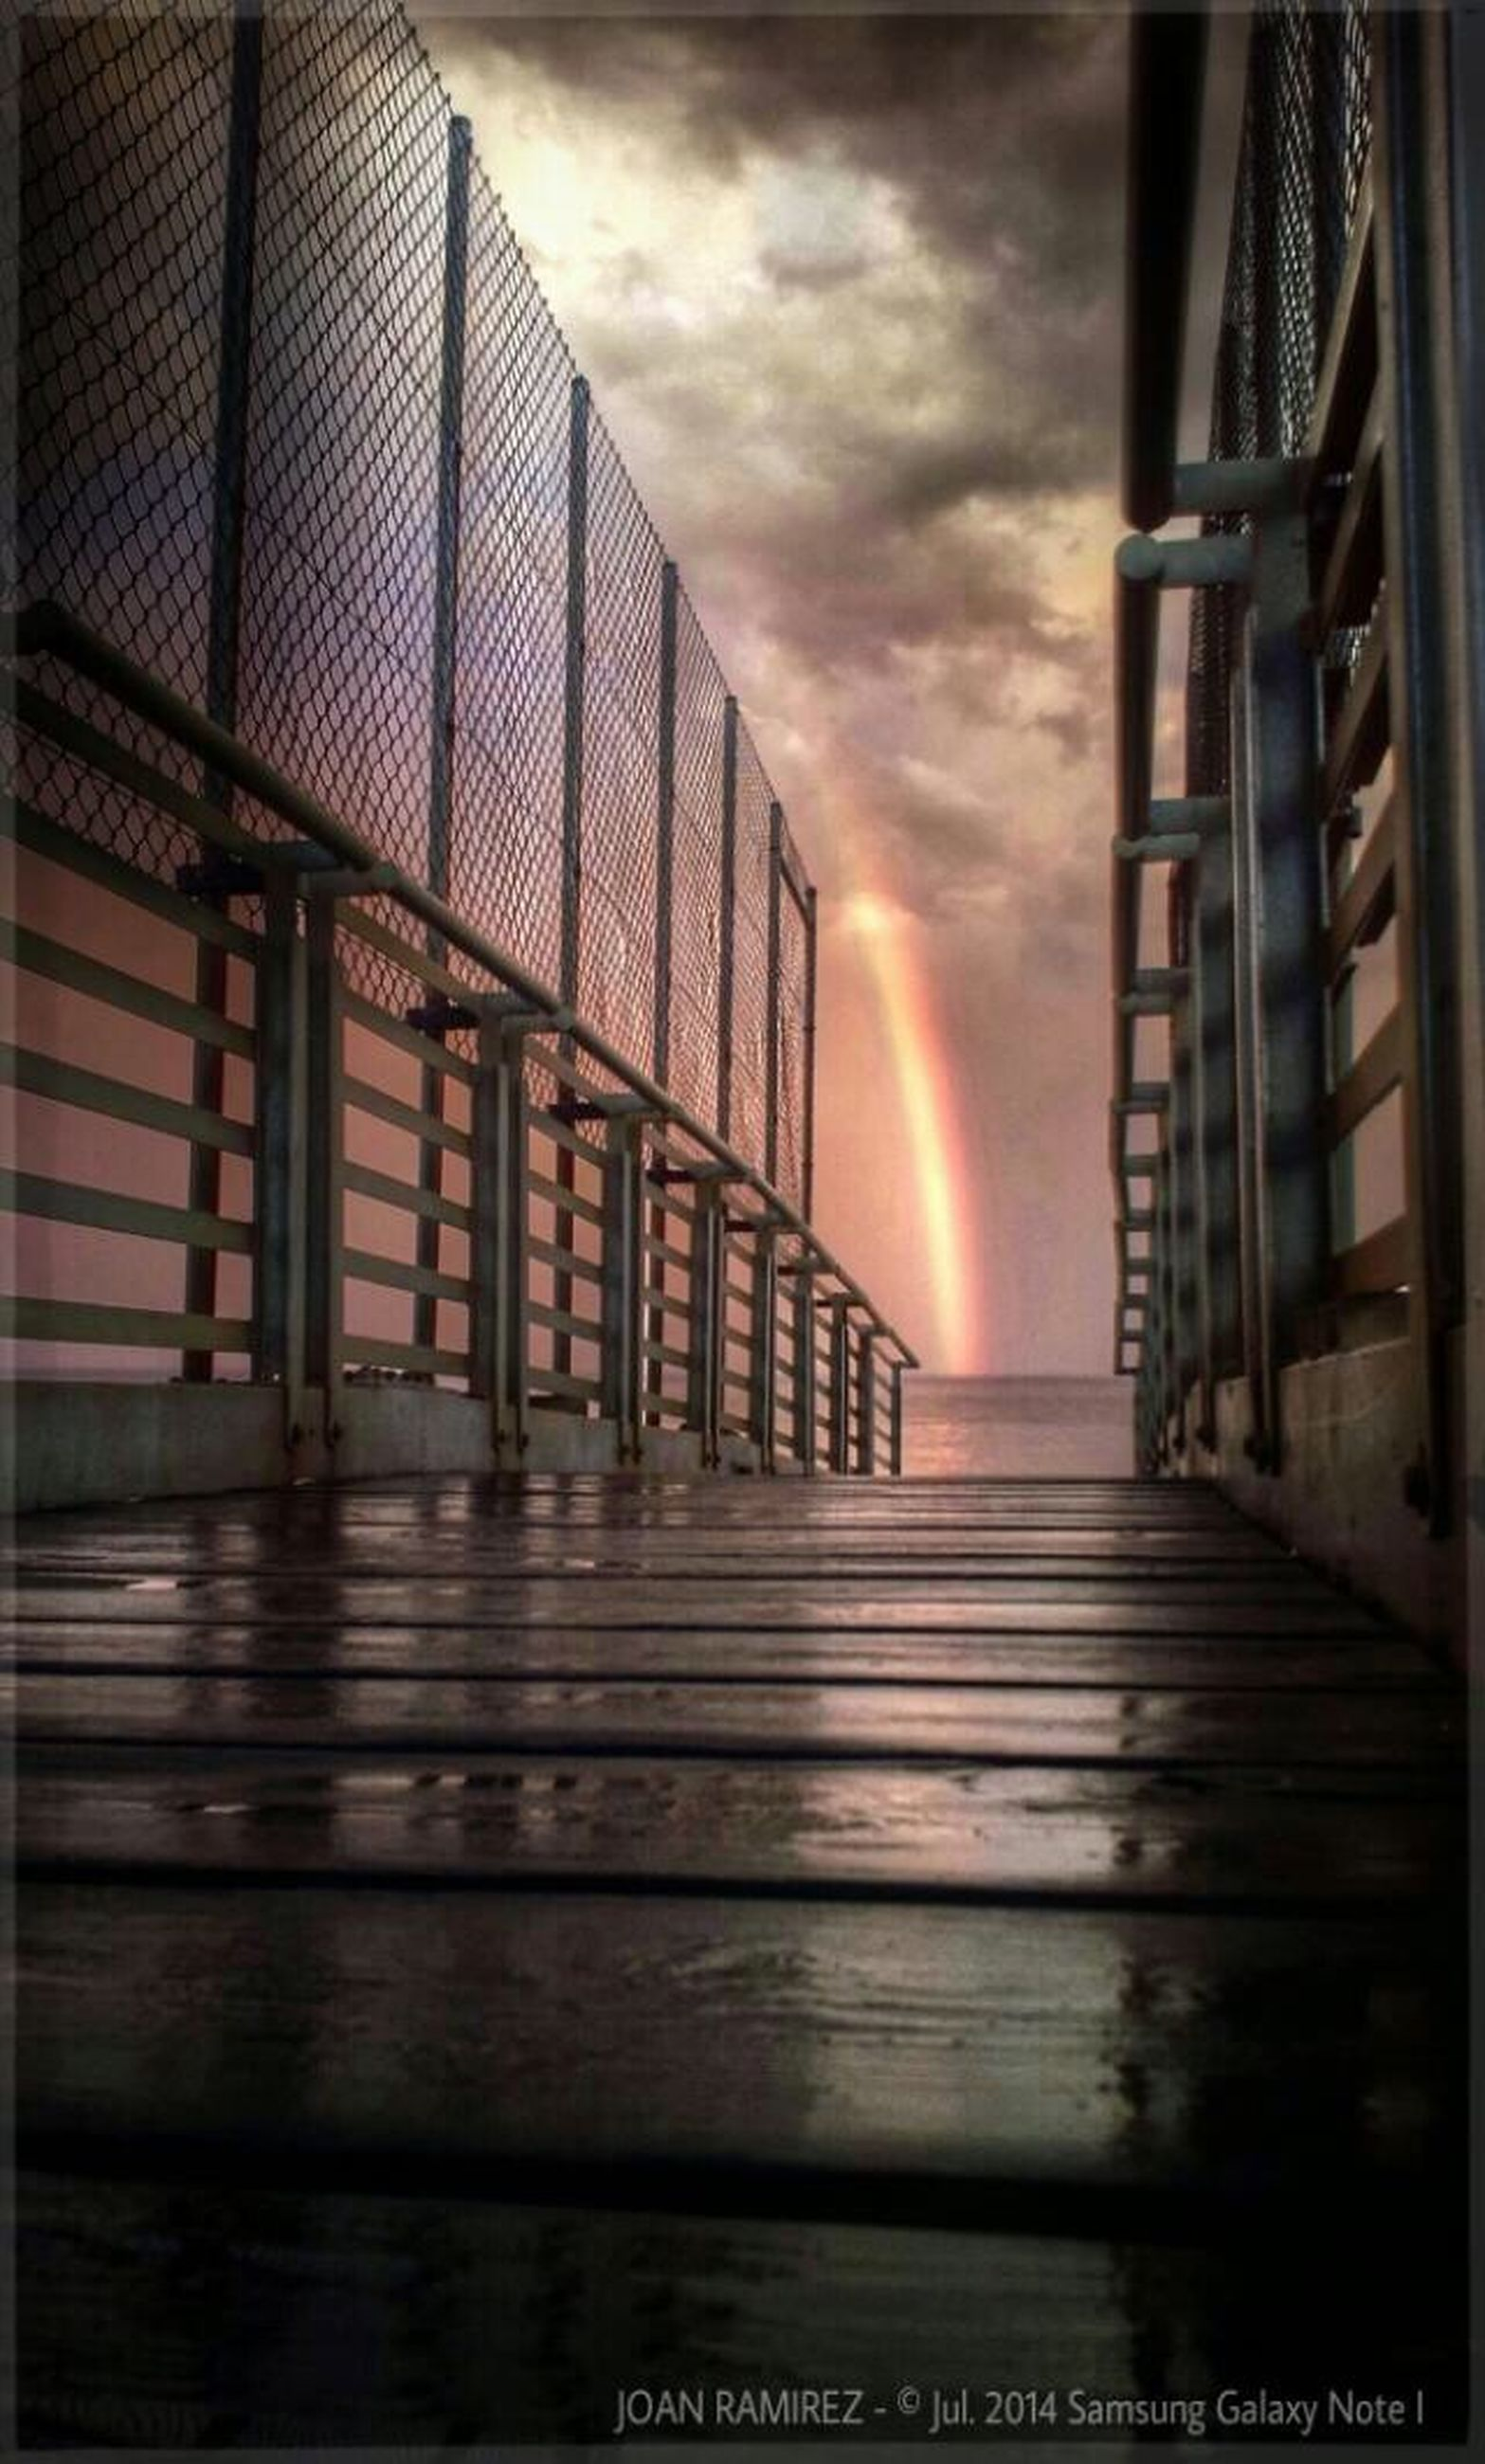 architecture, built structure, building exterior, sky, sunset, cloud - sky, low angle view, railing, building, auto post production filter, cloud, cloudy, outdoors, no people, orange color, sunlight, steps, city, day, residential structure